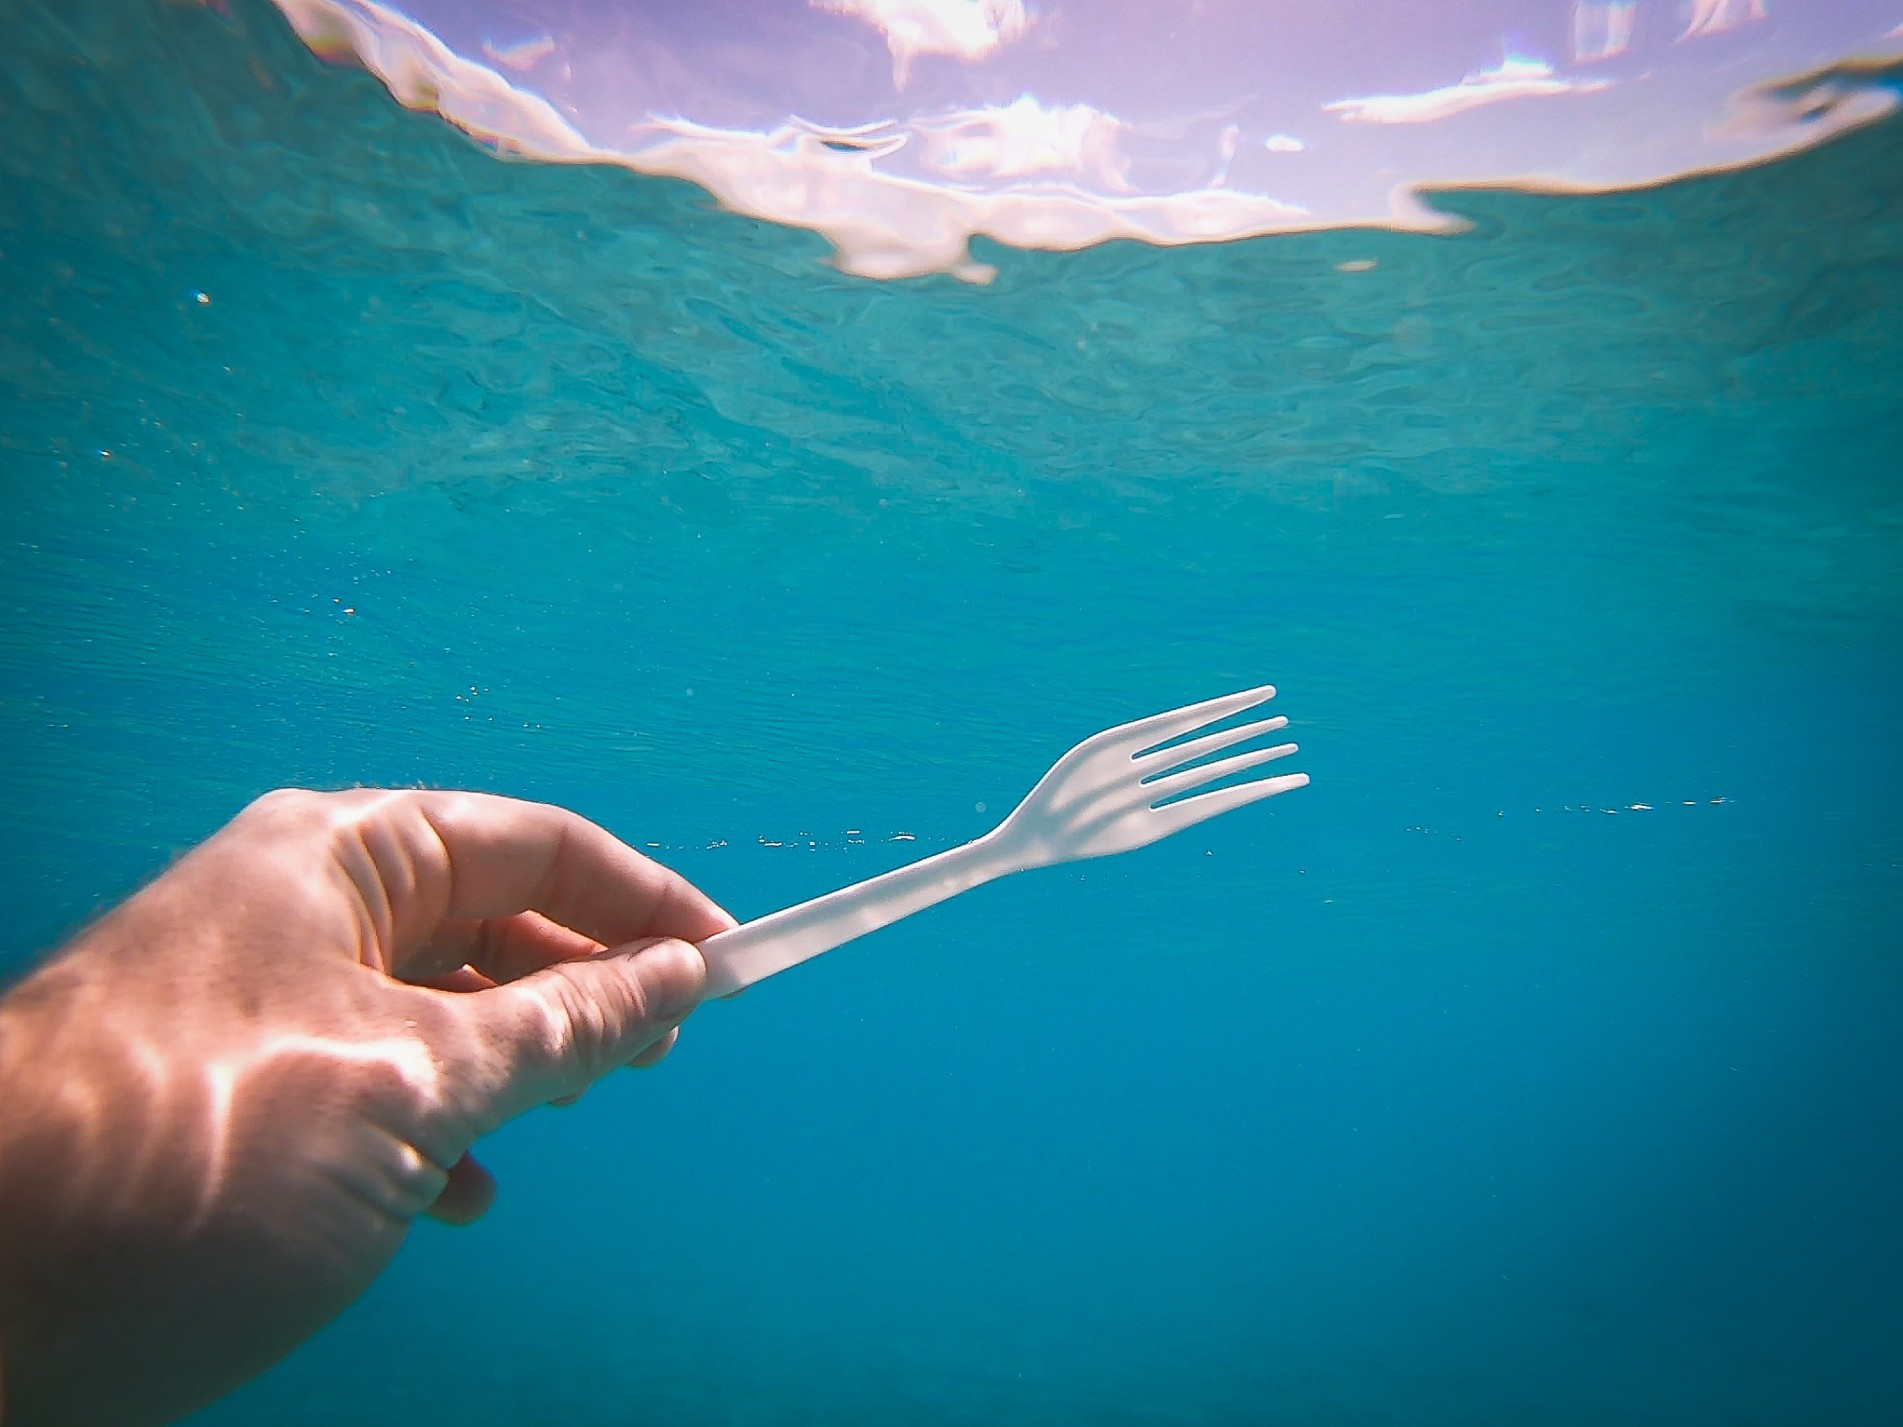 A single-use plastic fork in the water.